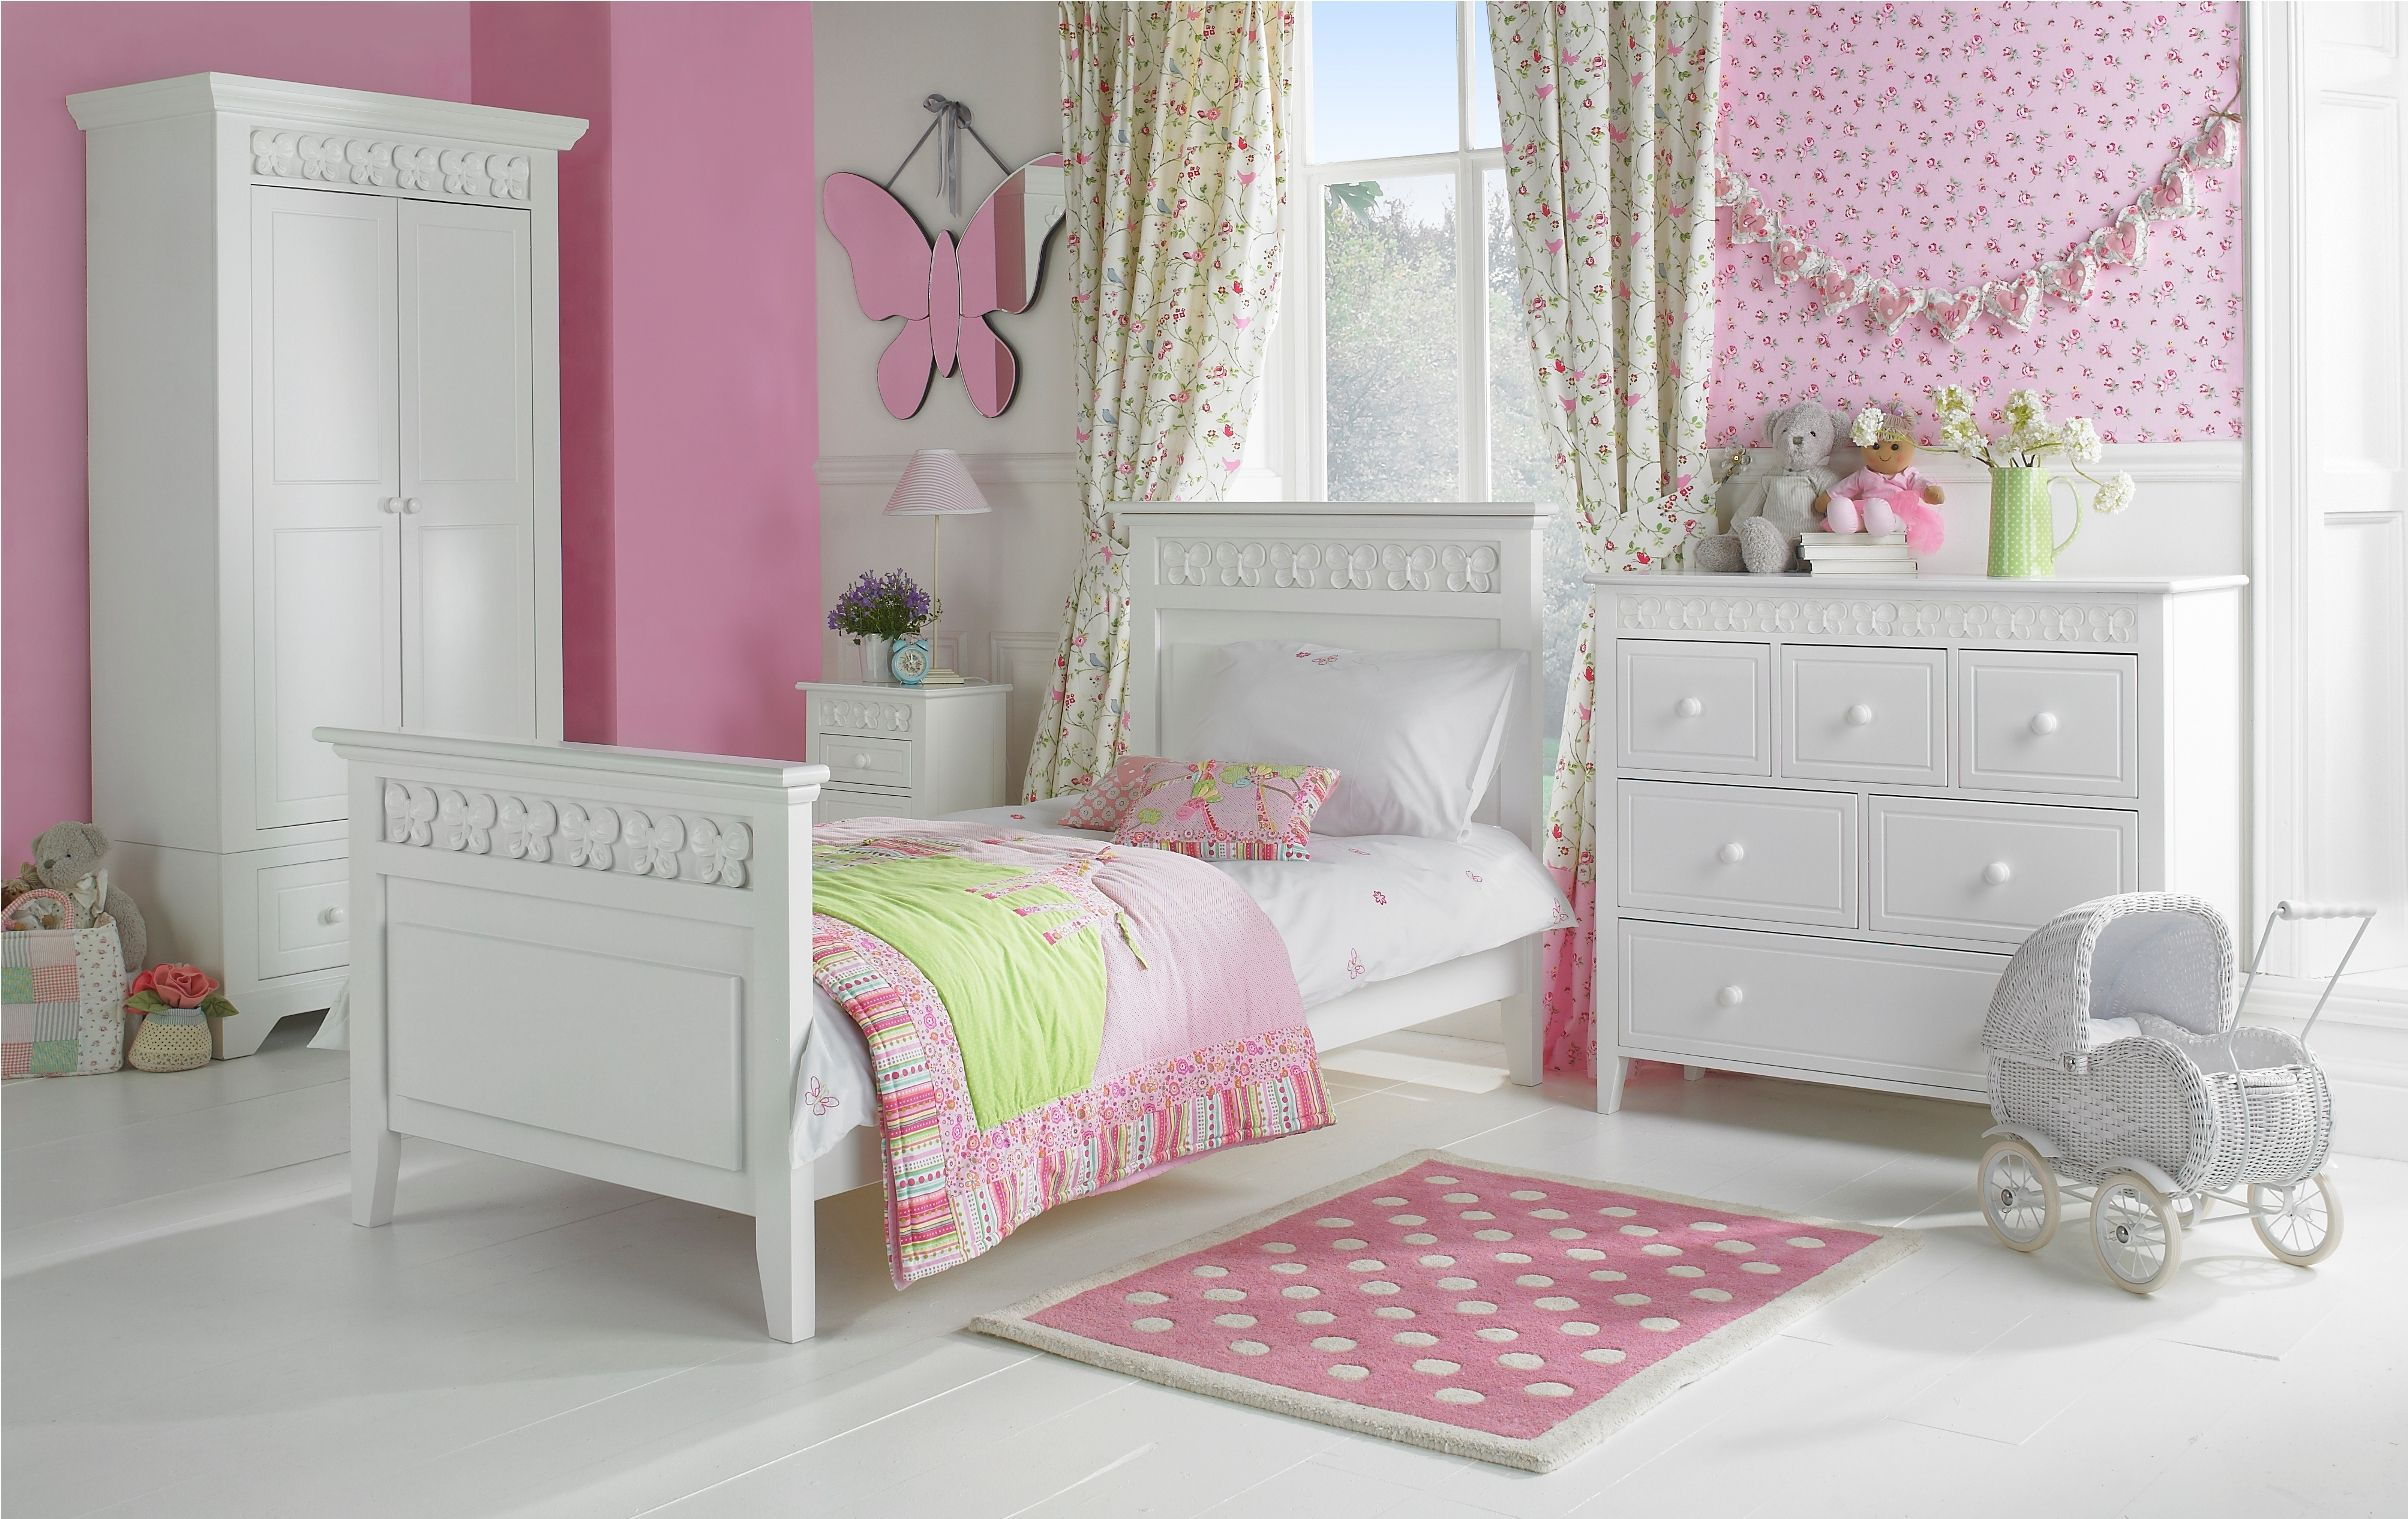 Bedroom Design Websites Furniture For Girl Bedroom Conglua White Girls Toddler Ideas